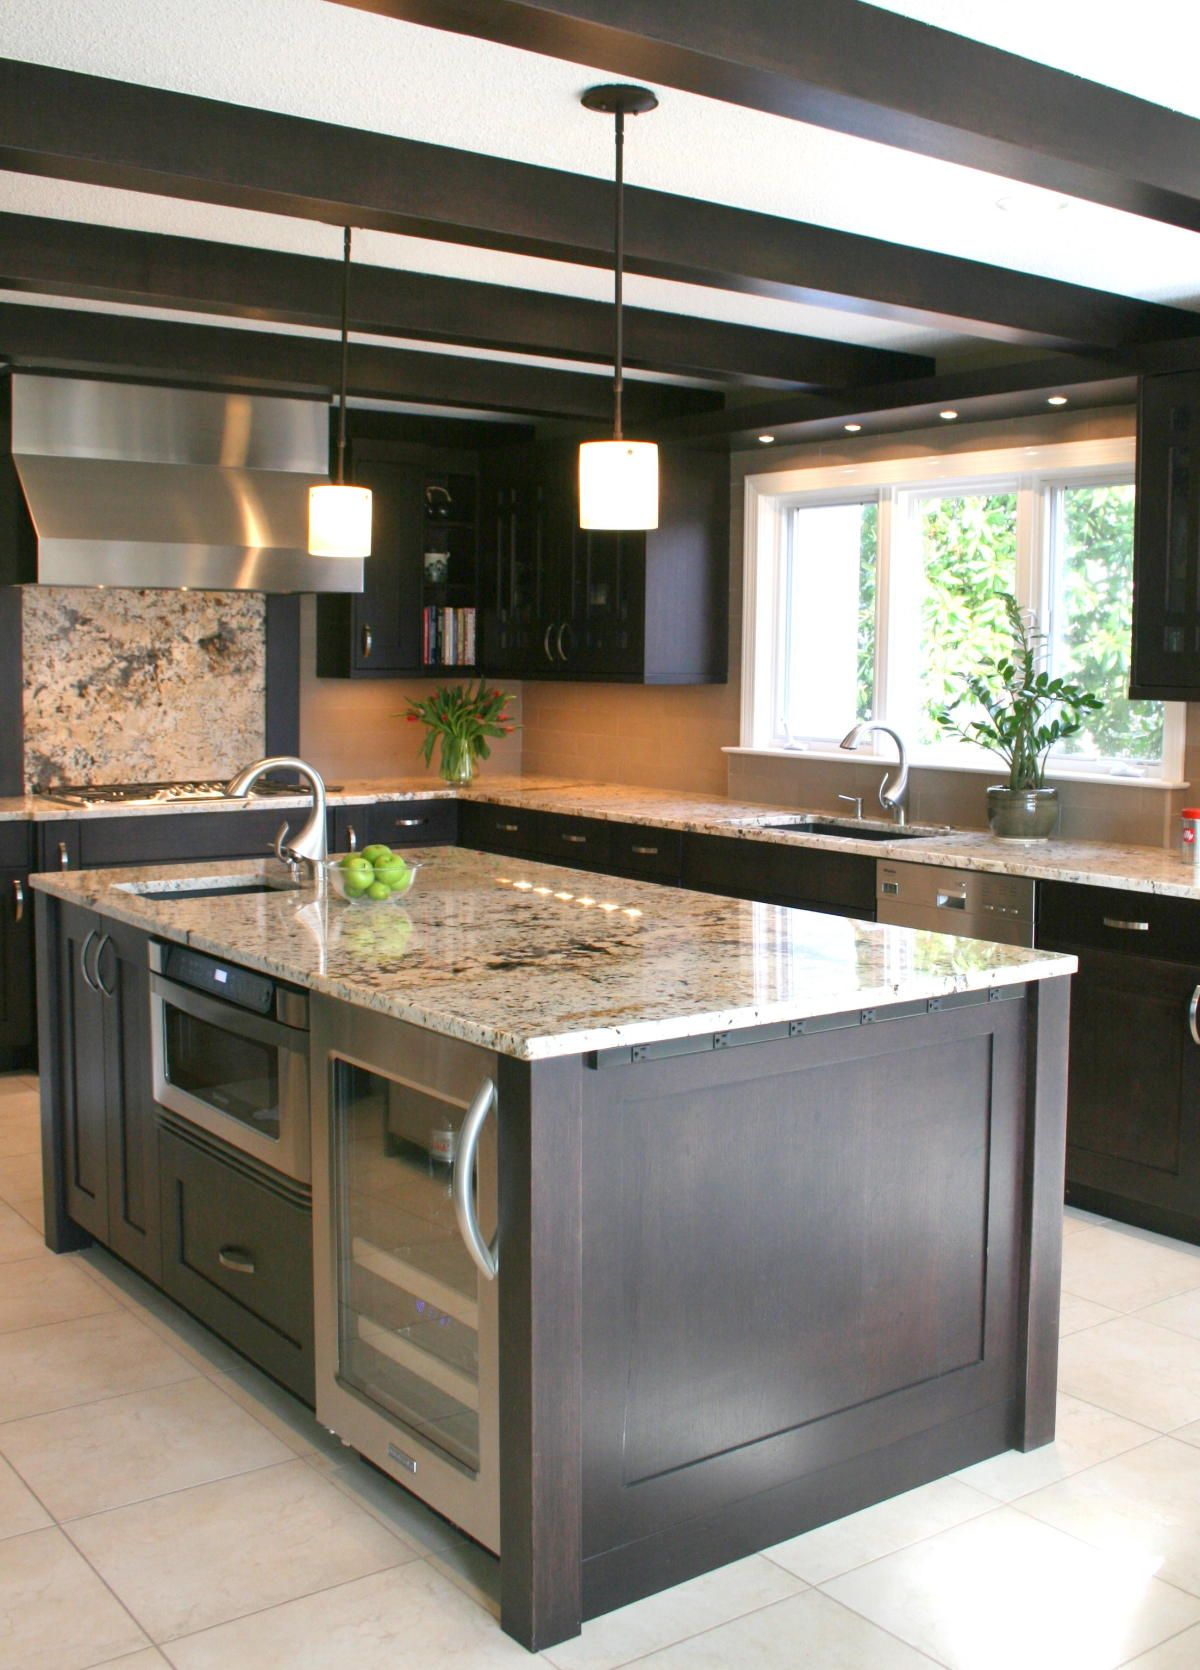 The working island appliances in the kitchen island for Kitchen ideas under 5000